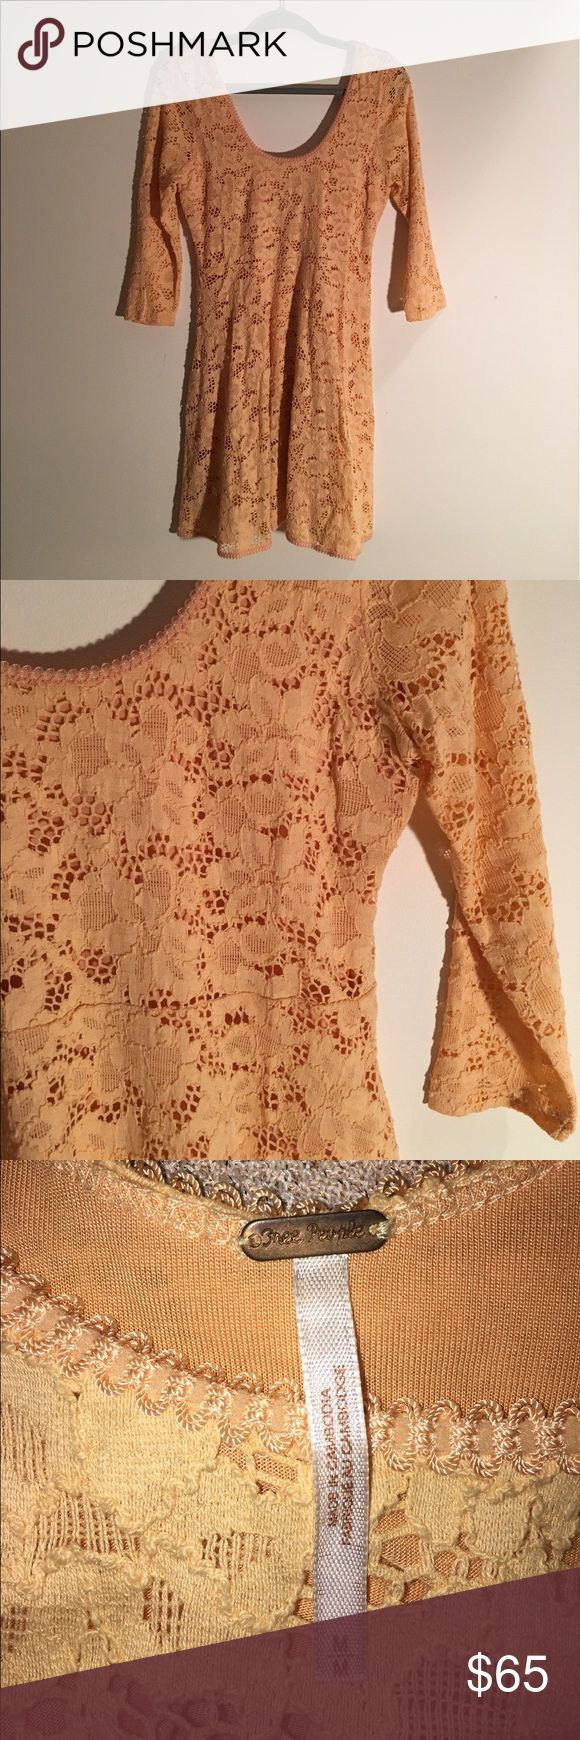 Free People Lace Dress Worn once! Floral lace dress in a beautiful peachy orange color, perfect for summer!  Scoop neck and back. 3/4 length sleeve. Great condition, worn once with no stains or rips! Free People Dresses Mini